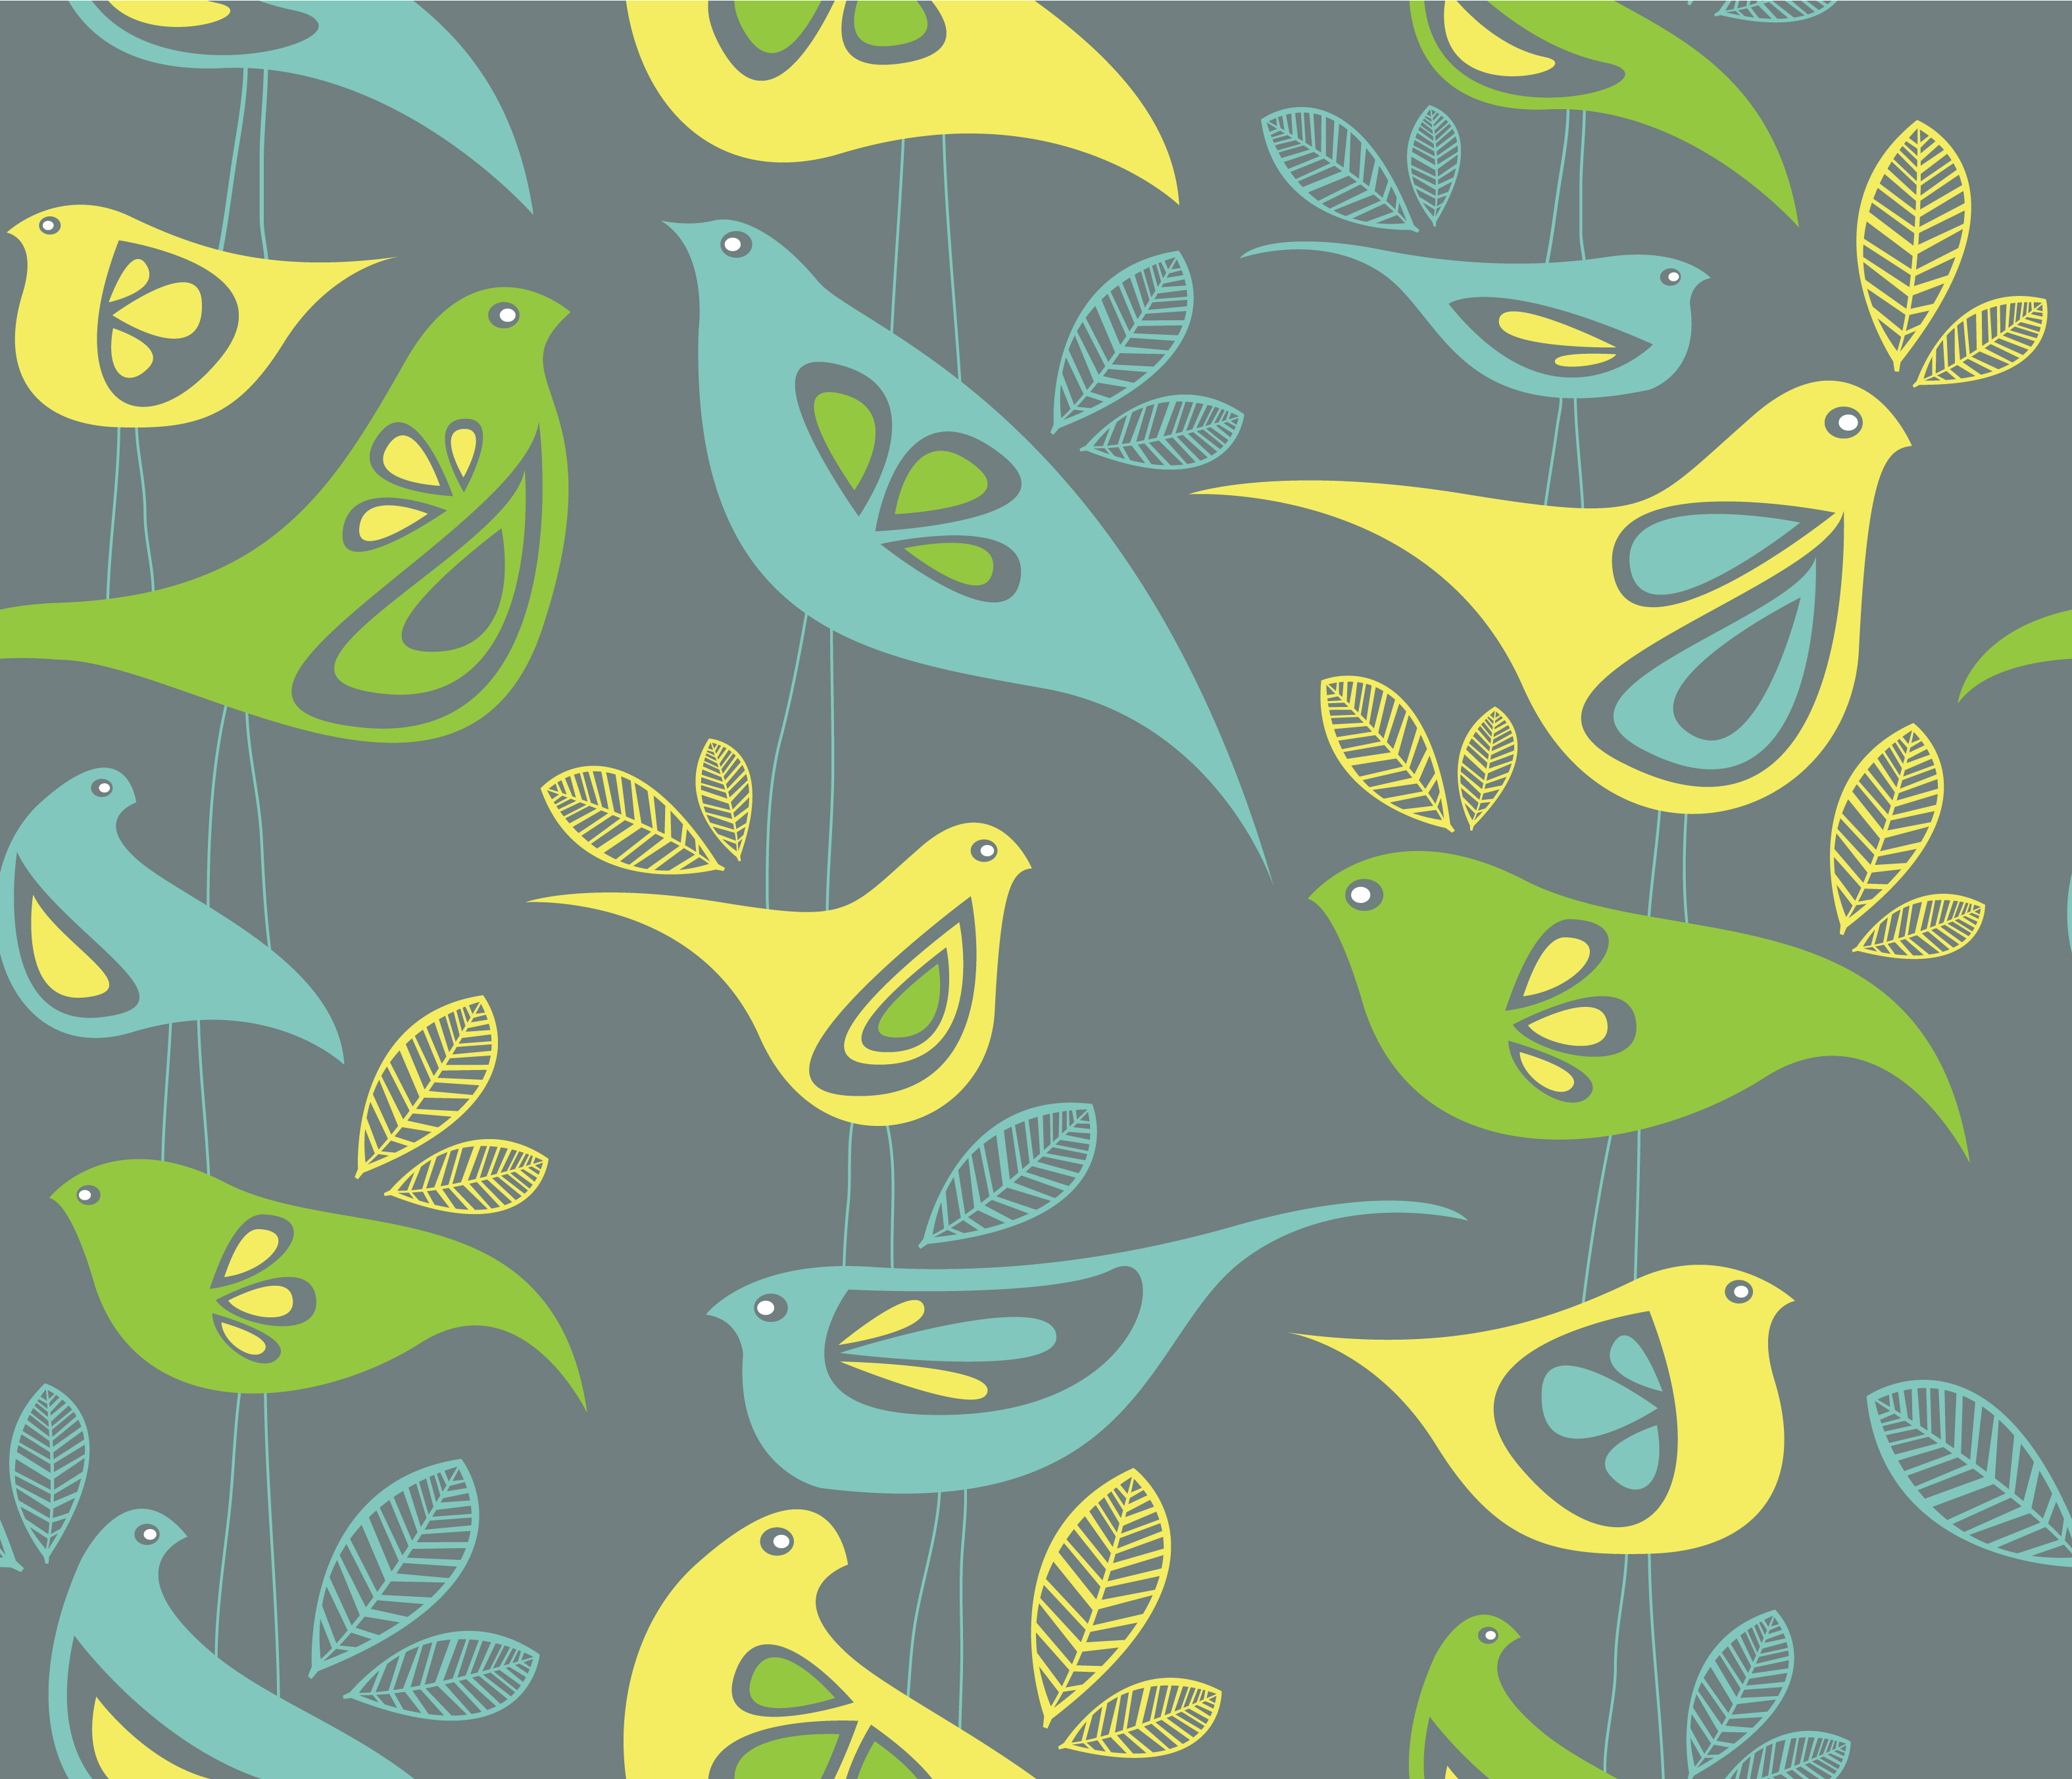 Fancy birds fabric design in the top 10 sketchcreative for Fabric designs